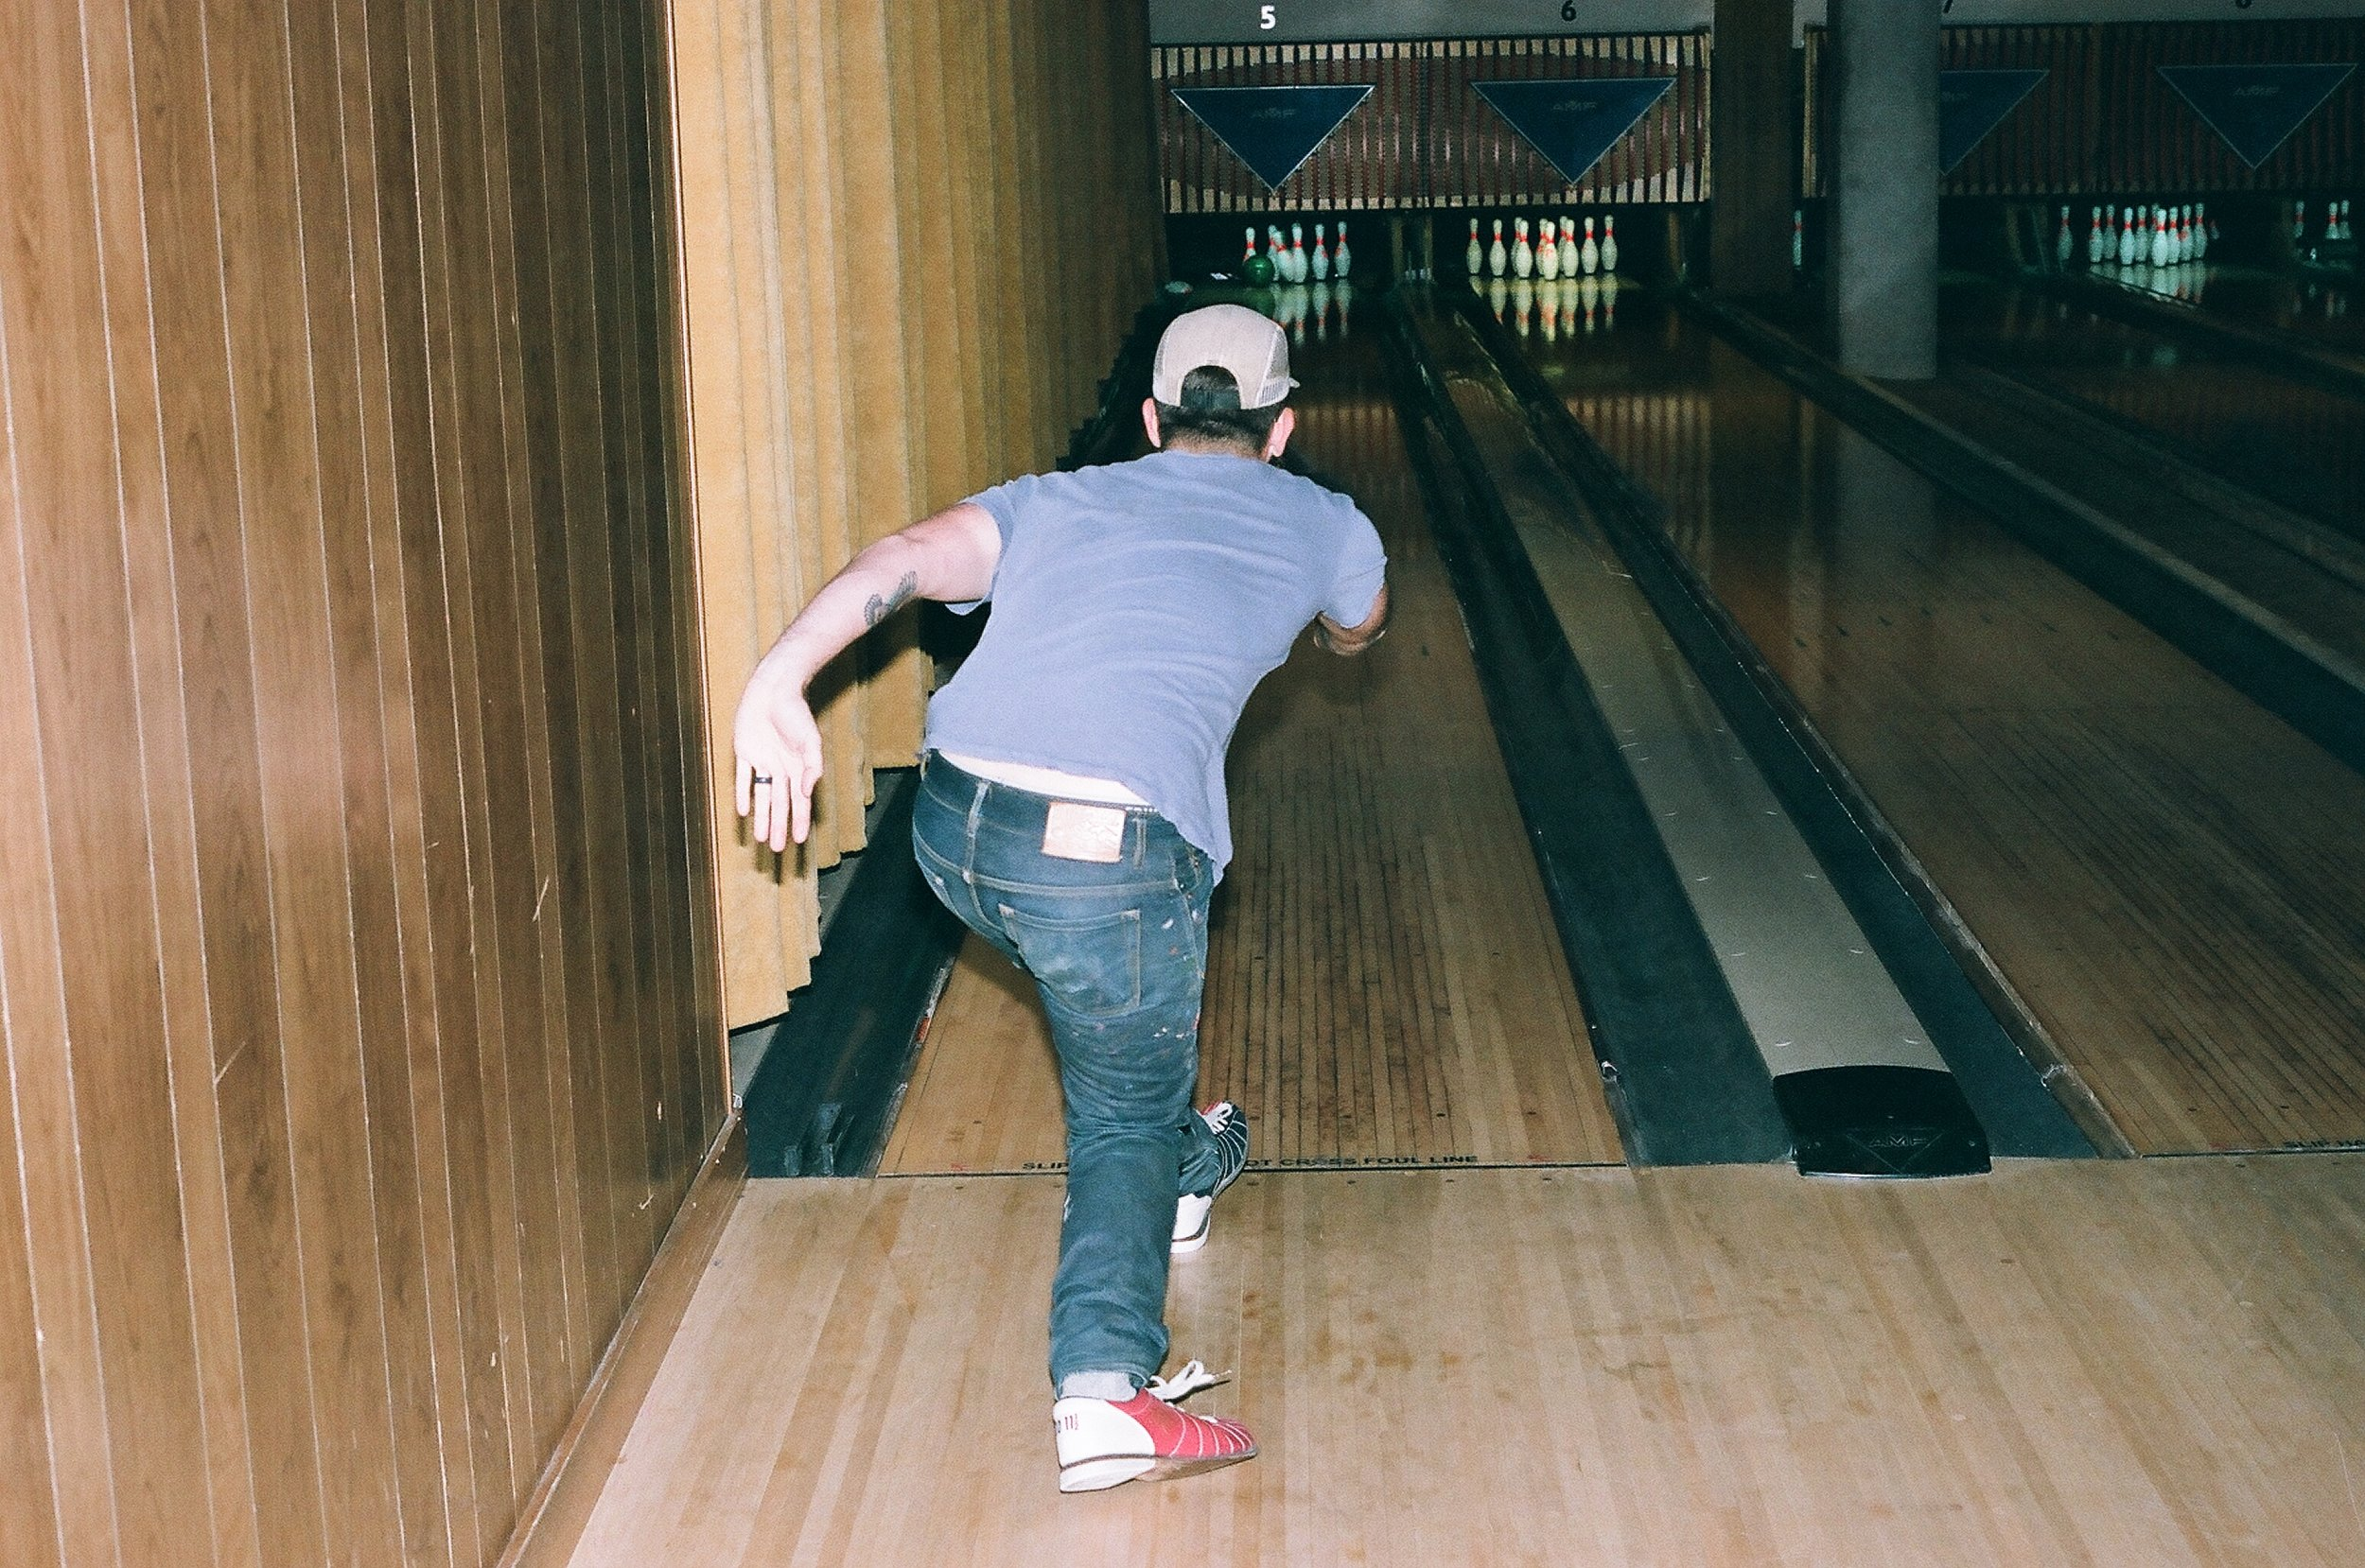 That form is what got Dusty a turkey on the last frame.